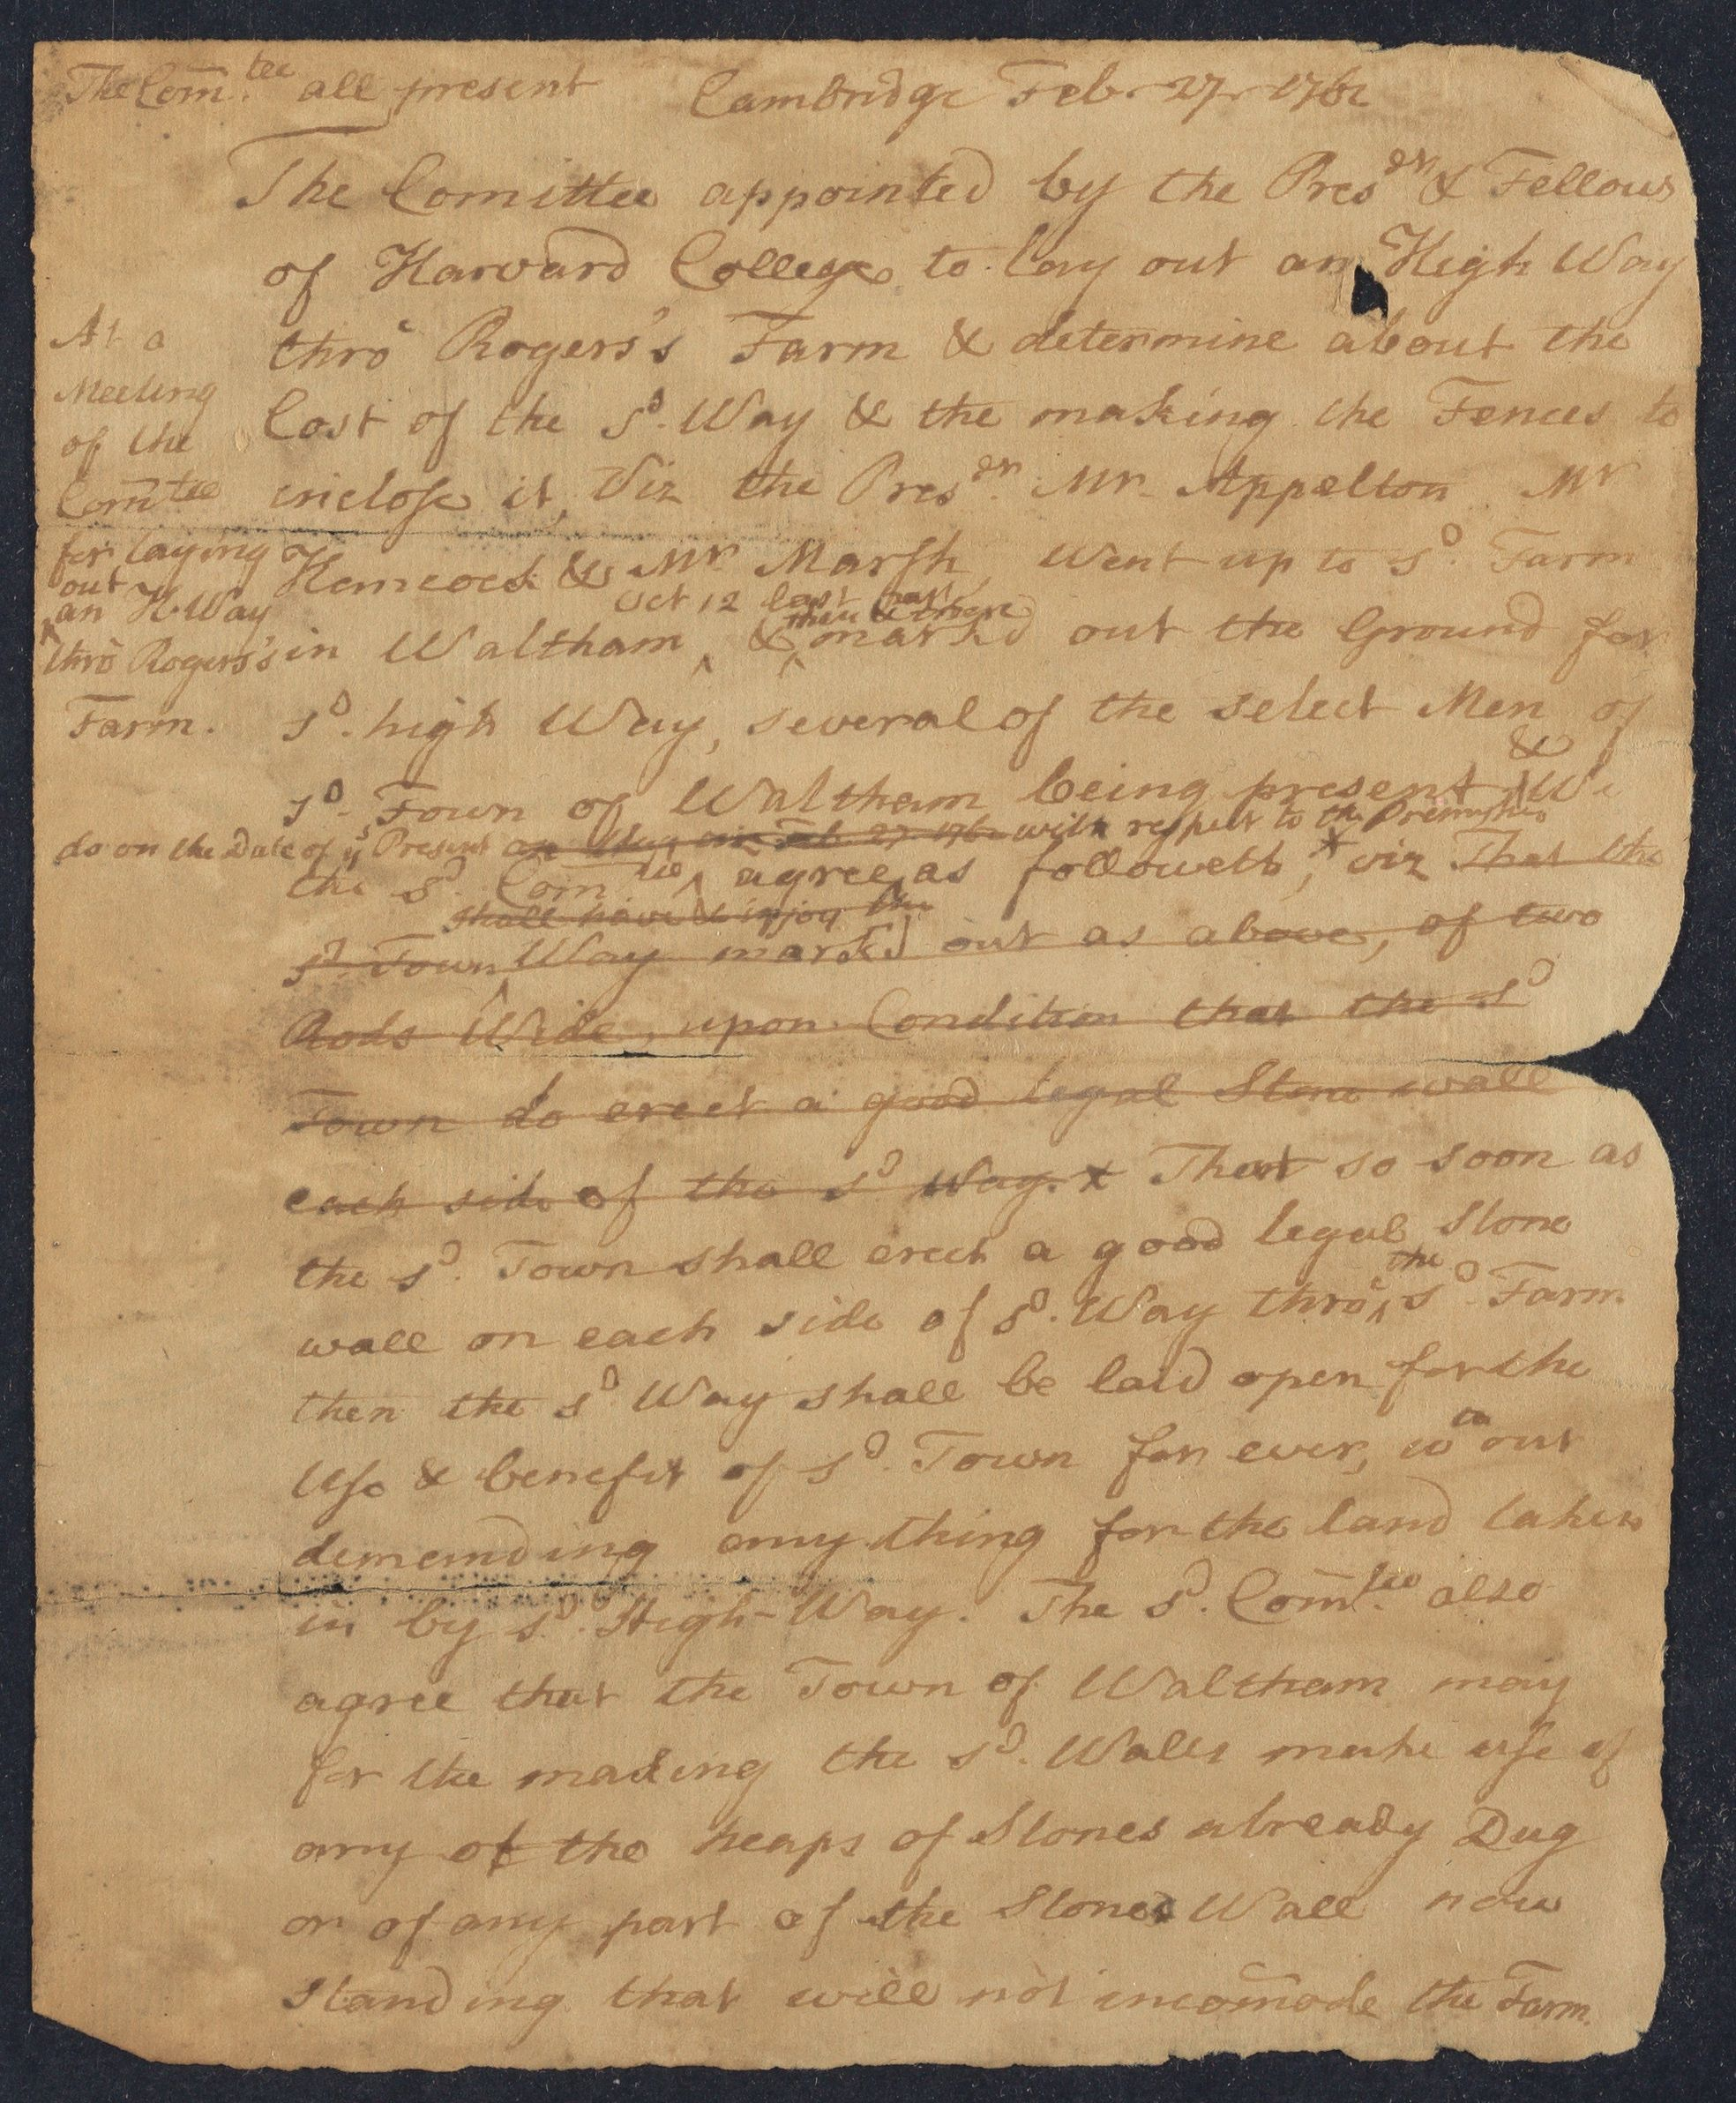 Resolution of the committee concerning the way through Rogers's farm, 1762 February 27